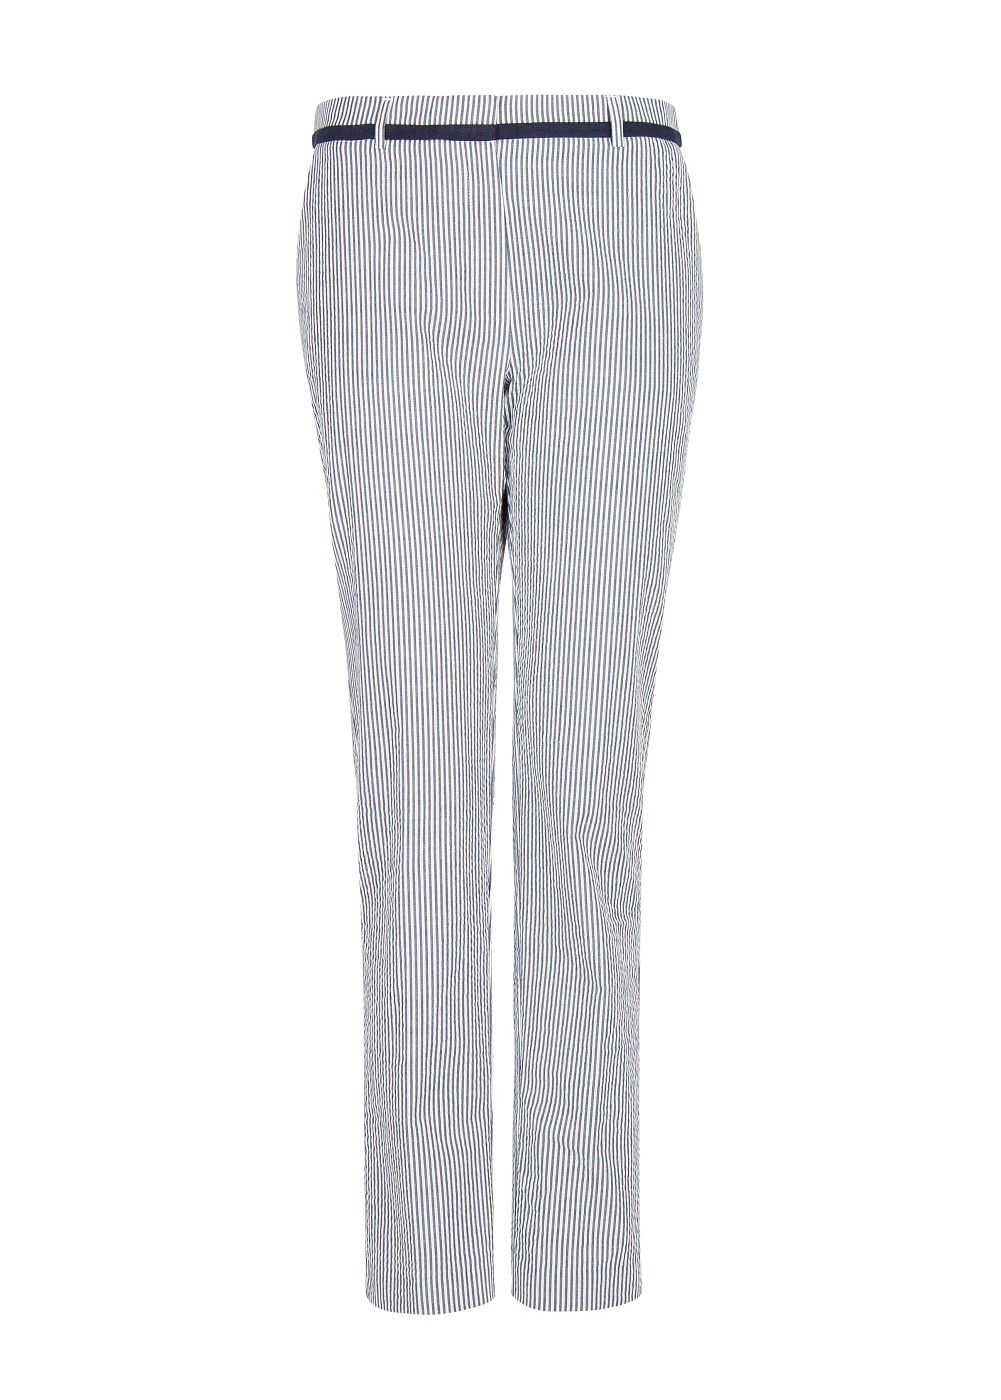 Seersucker suit trousers